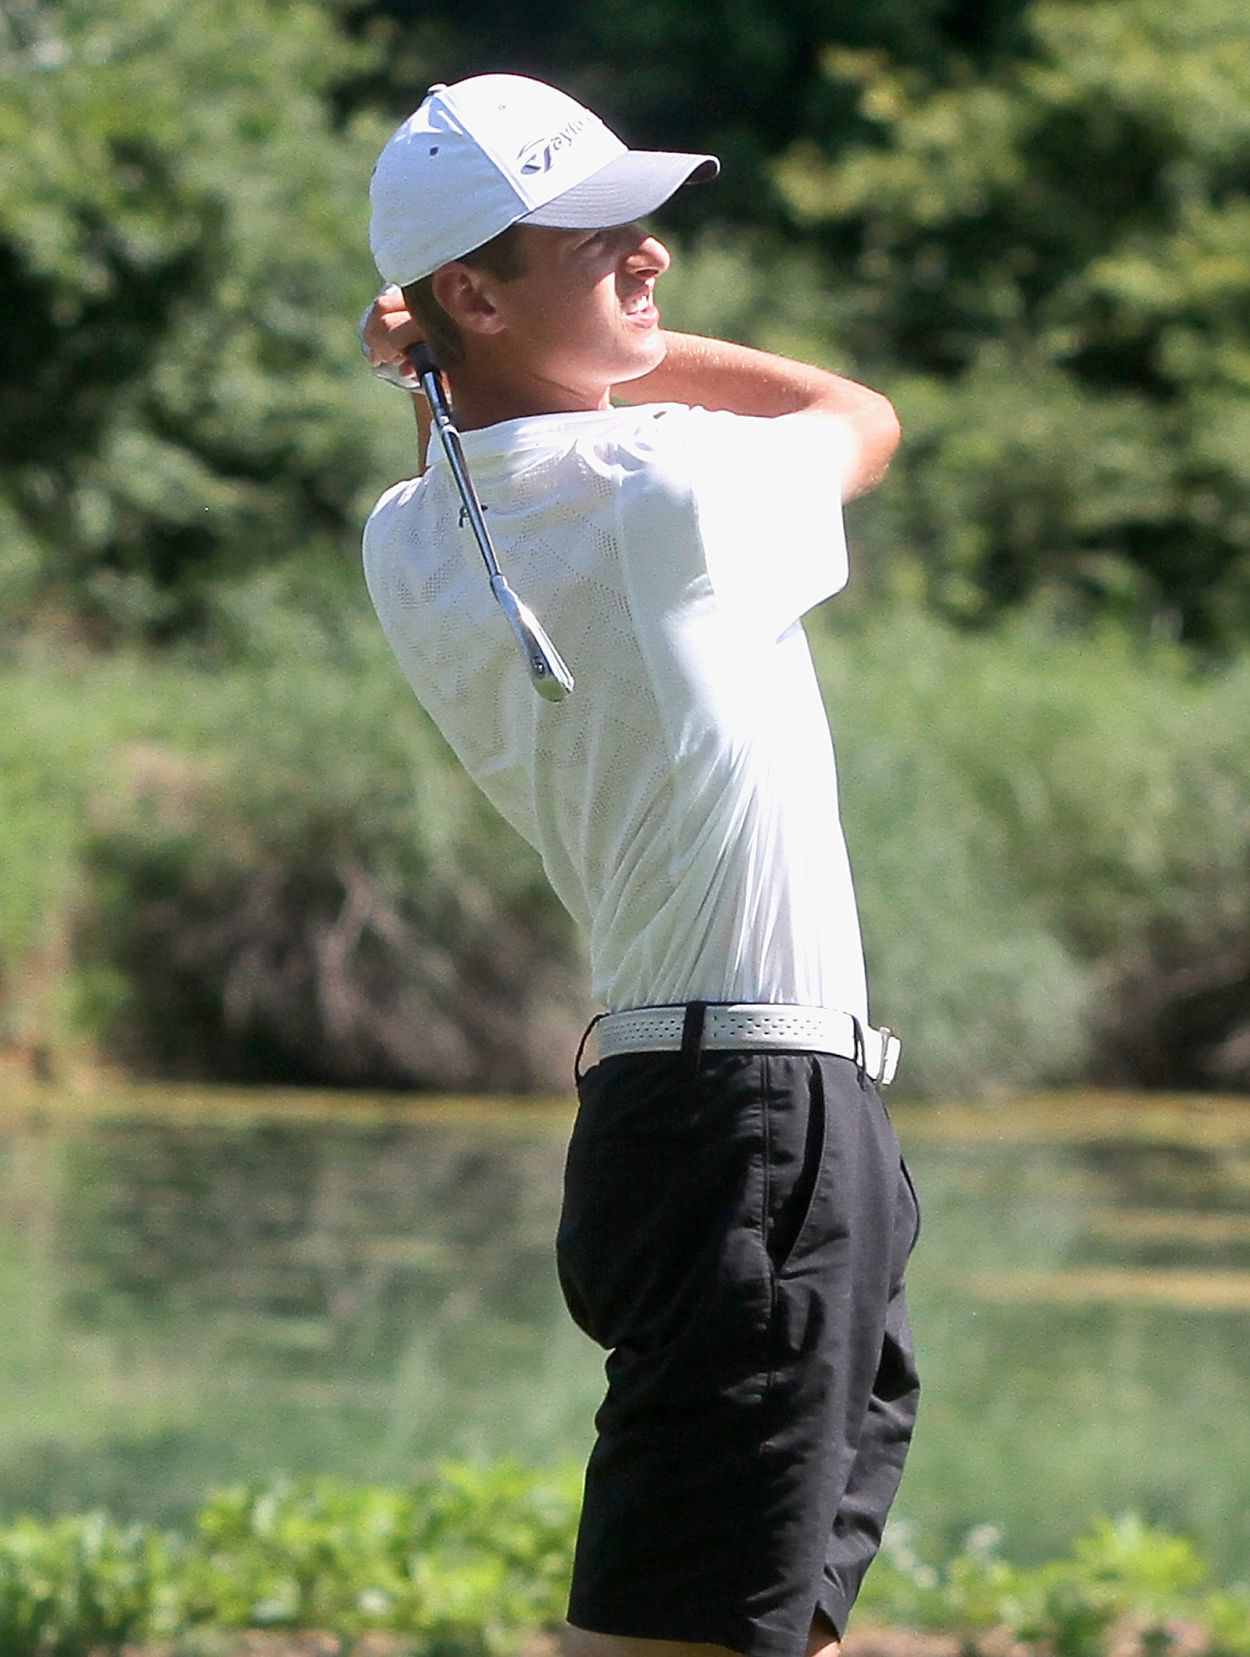 Bryce Beeler watches his tree shot down the fairway